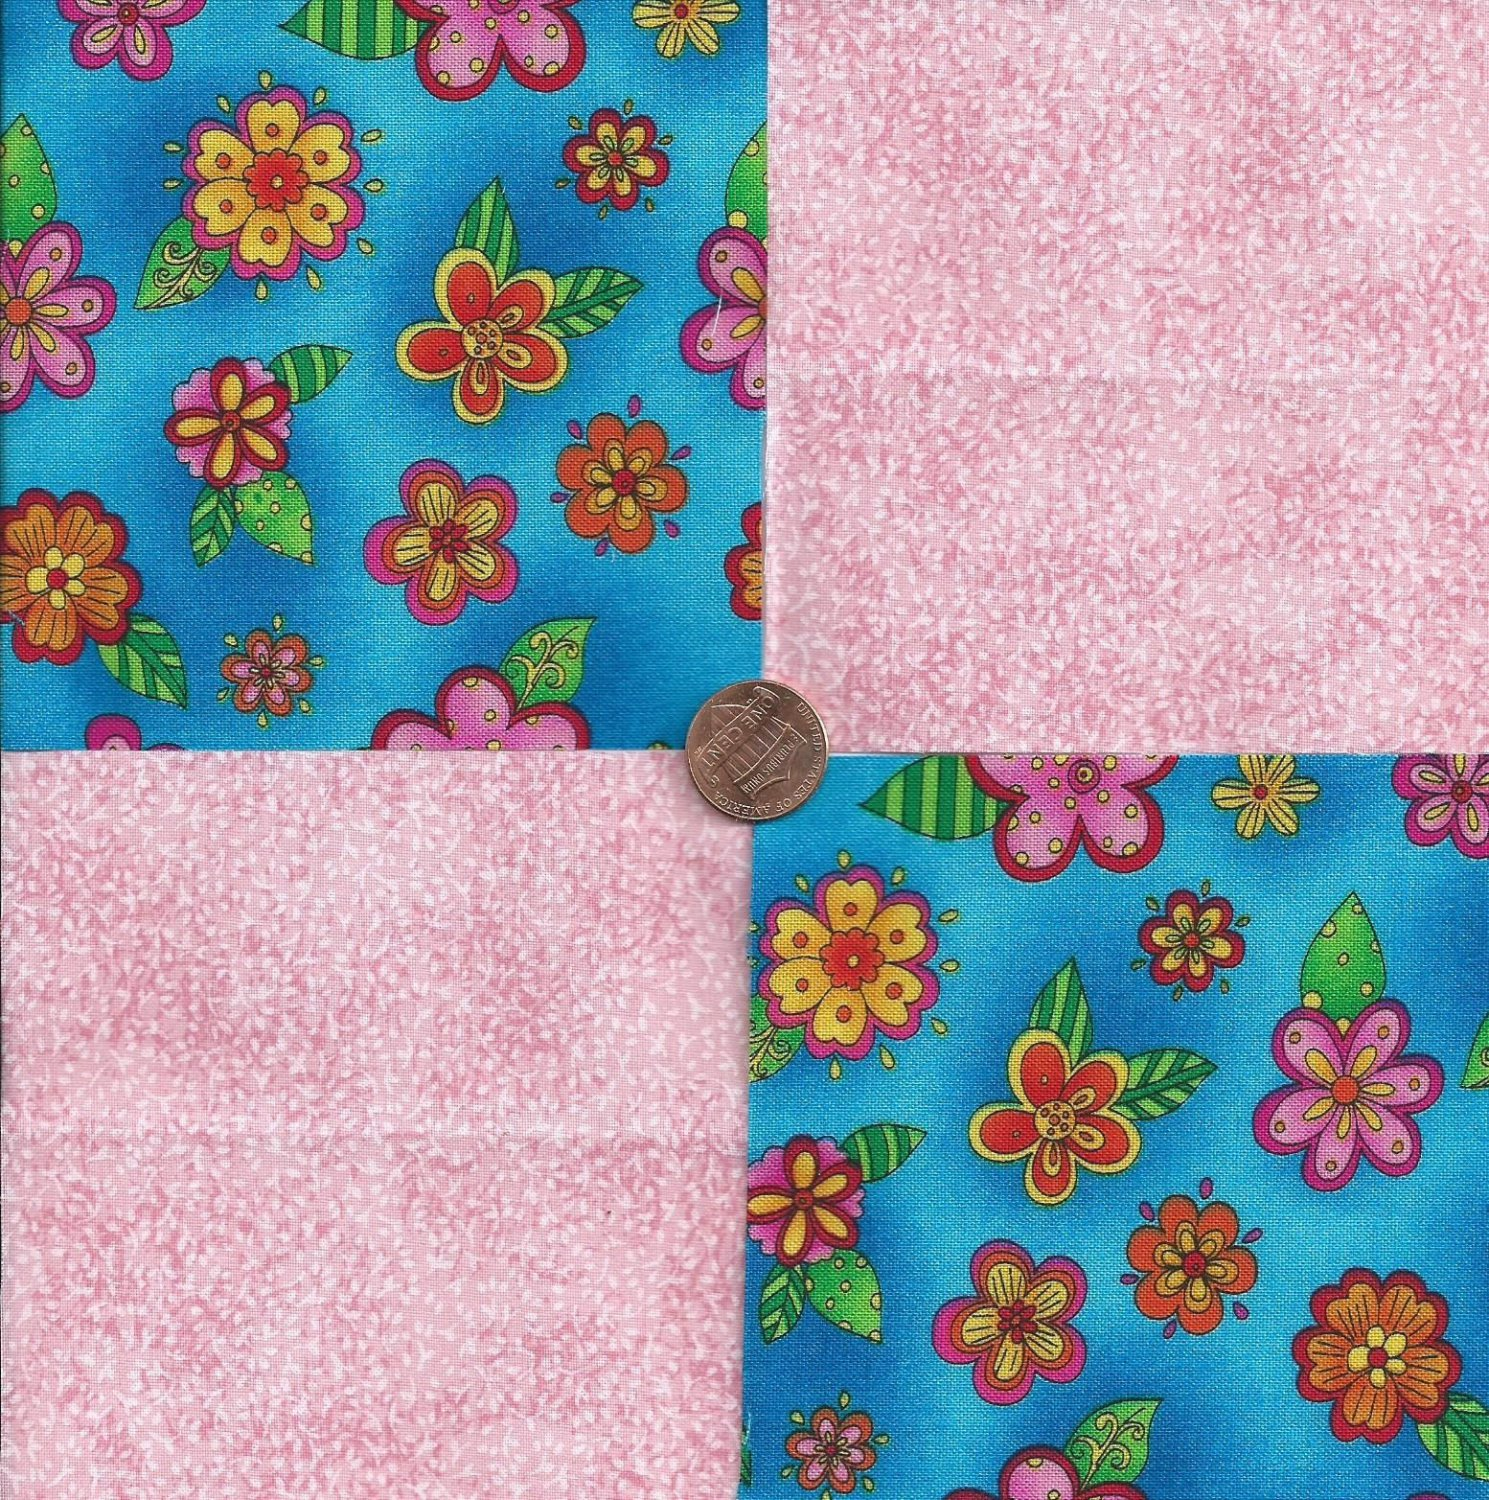 Colorful Flowers Pink Speckles 100% Cotton Fabric Quilt Square Blocks FT